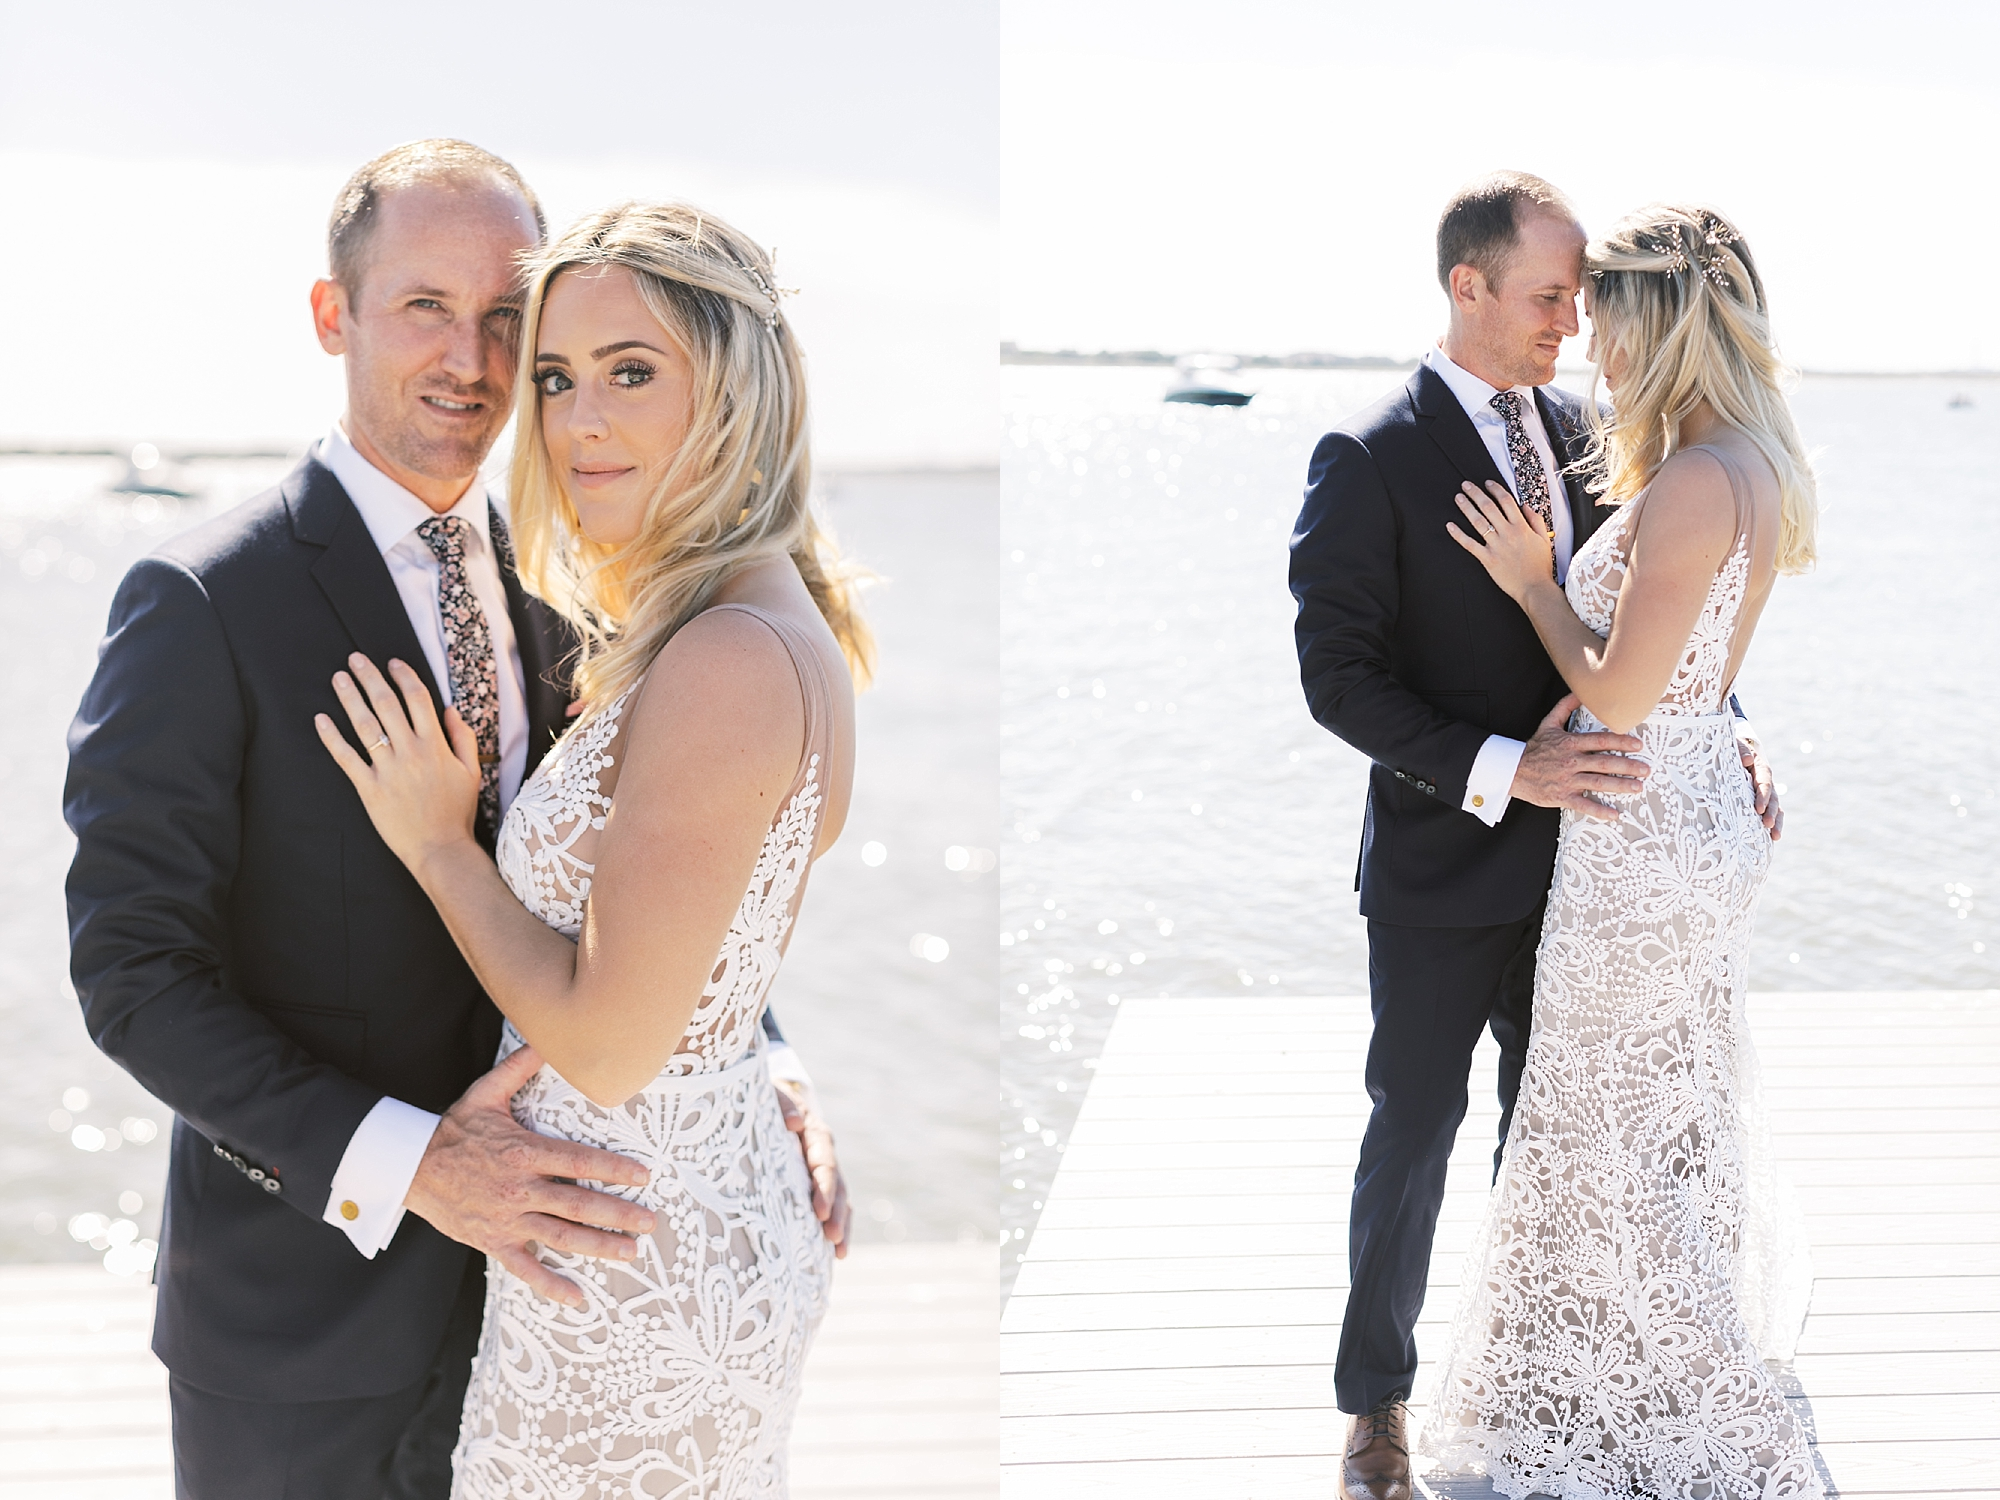 Stylish and Free Spirited Wedding Photography at One Atlantic in Atlantic City NJ by Magdalena Studios 0042 1